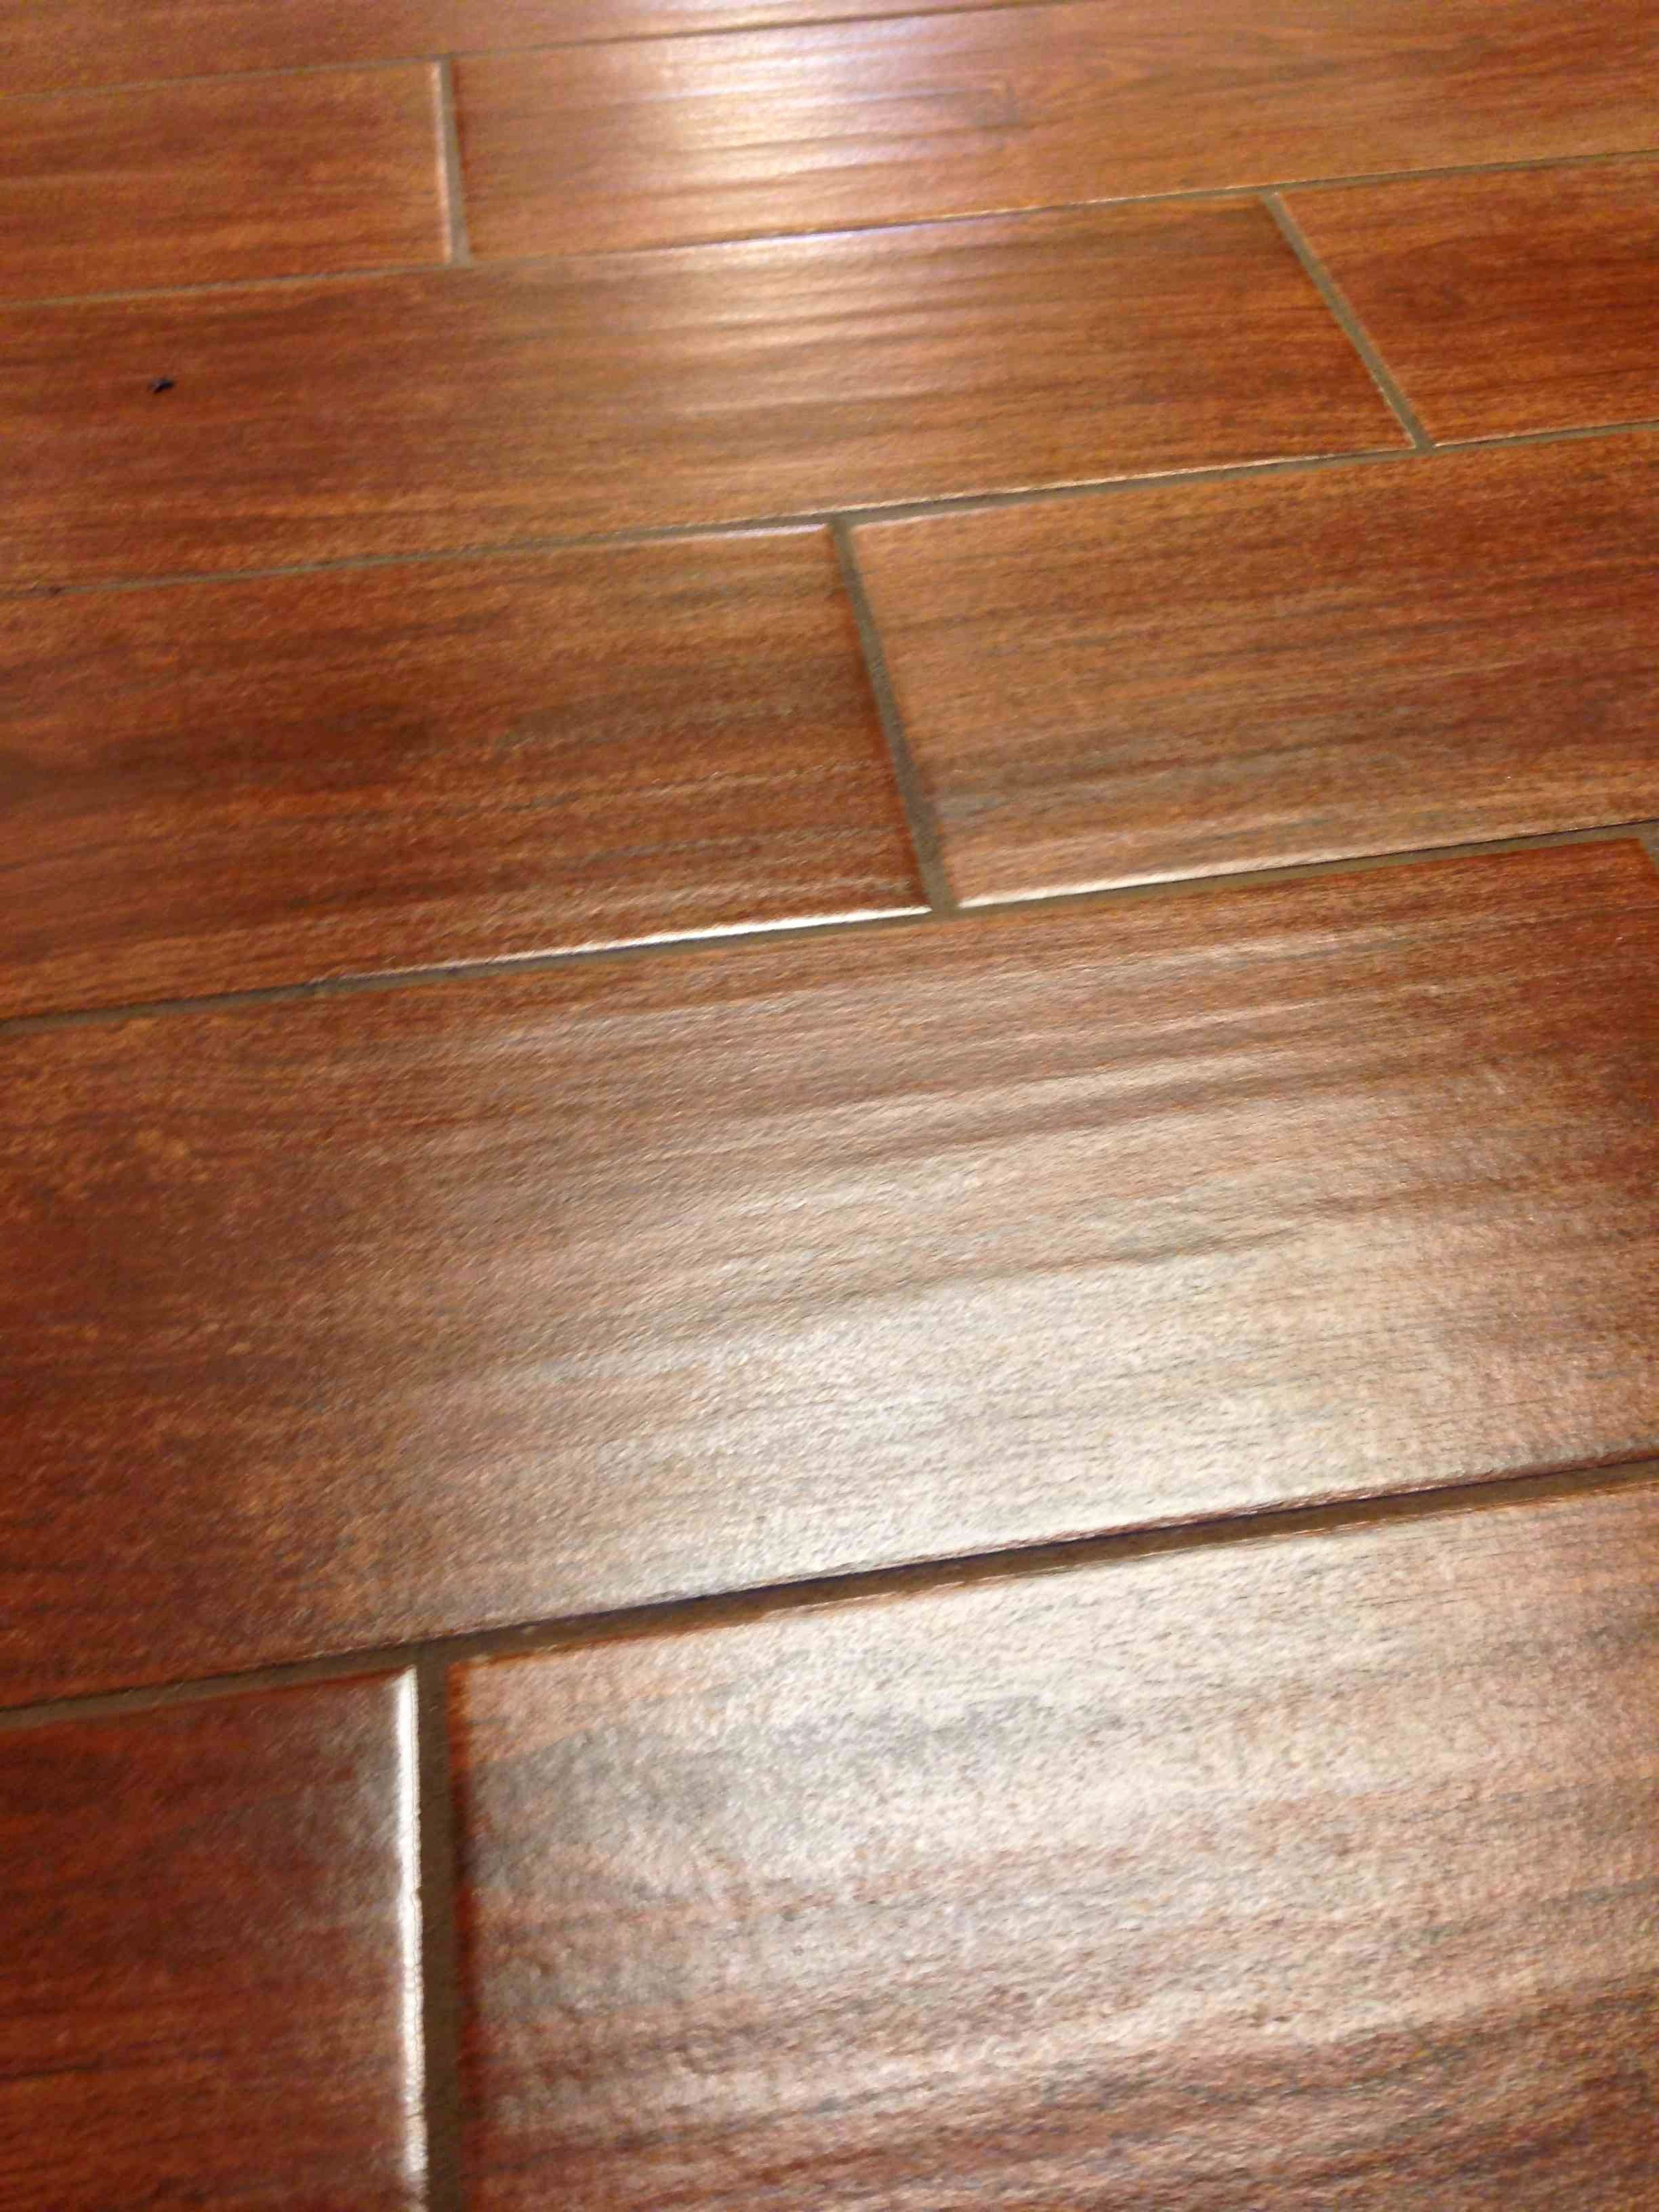 Vinyl Wood Flooring Vs Hardwood Of 18 Fresh Hardwood Collection Dizpos Com Throughout Hardwood Best Of Prefinished Wood Flooring Gallery